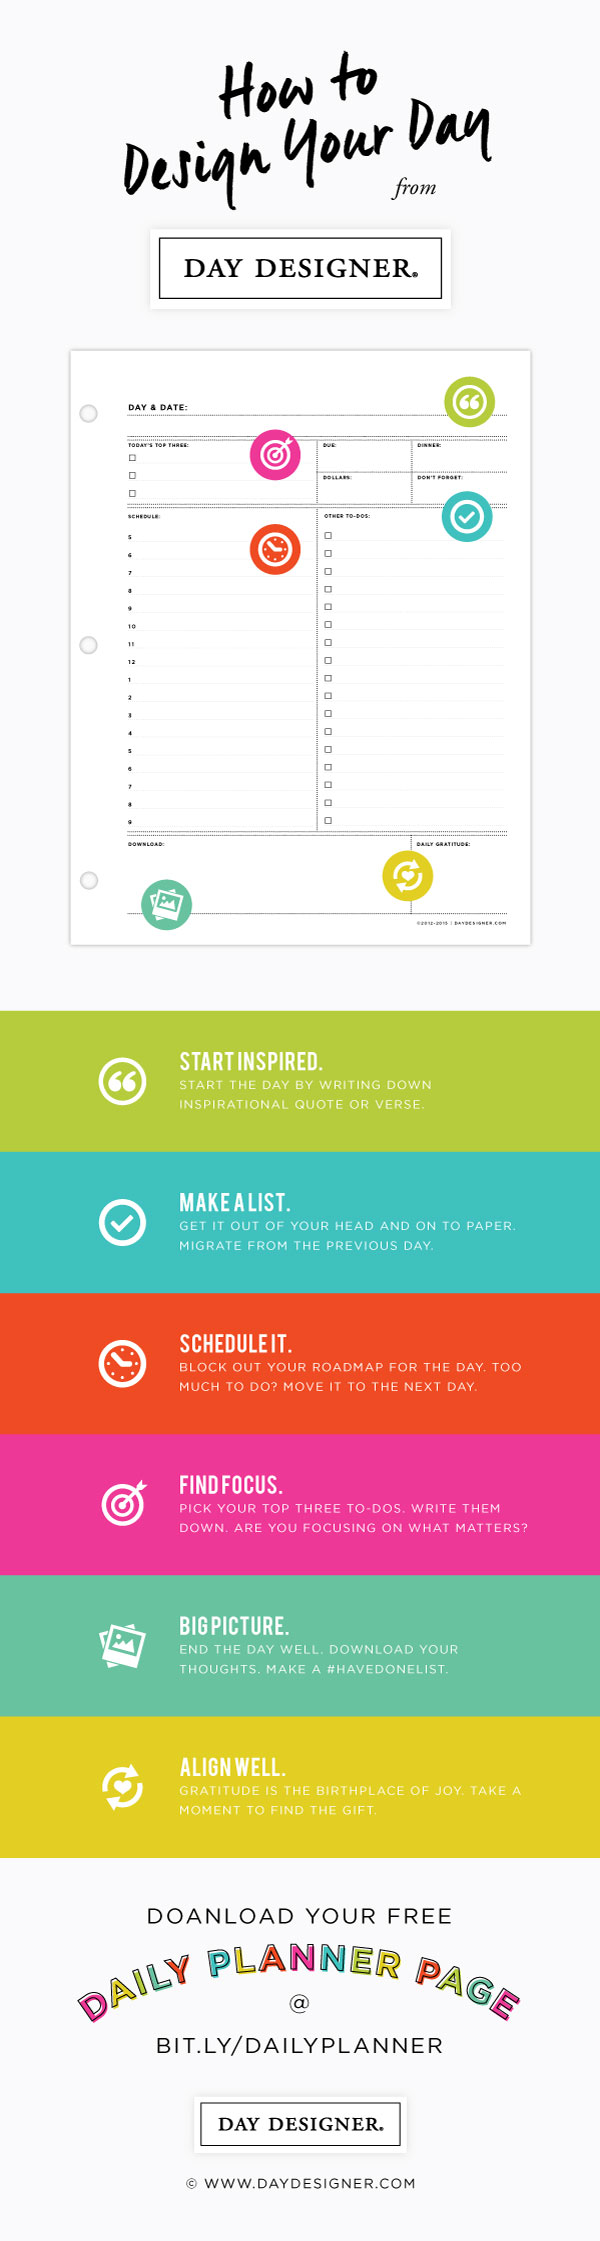 how to design your day 1 start inspired 2 make a list 3 schedule